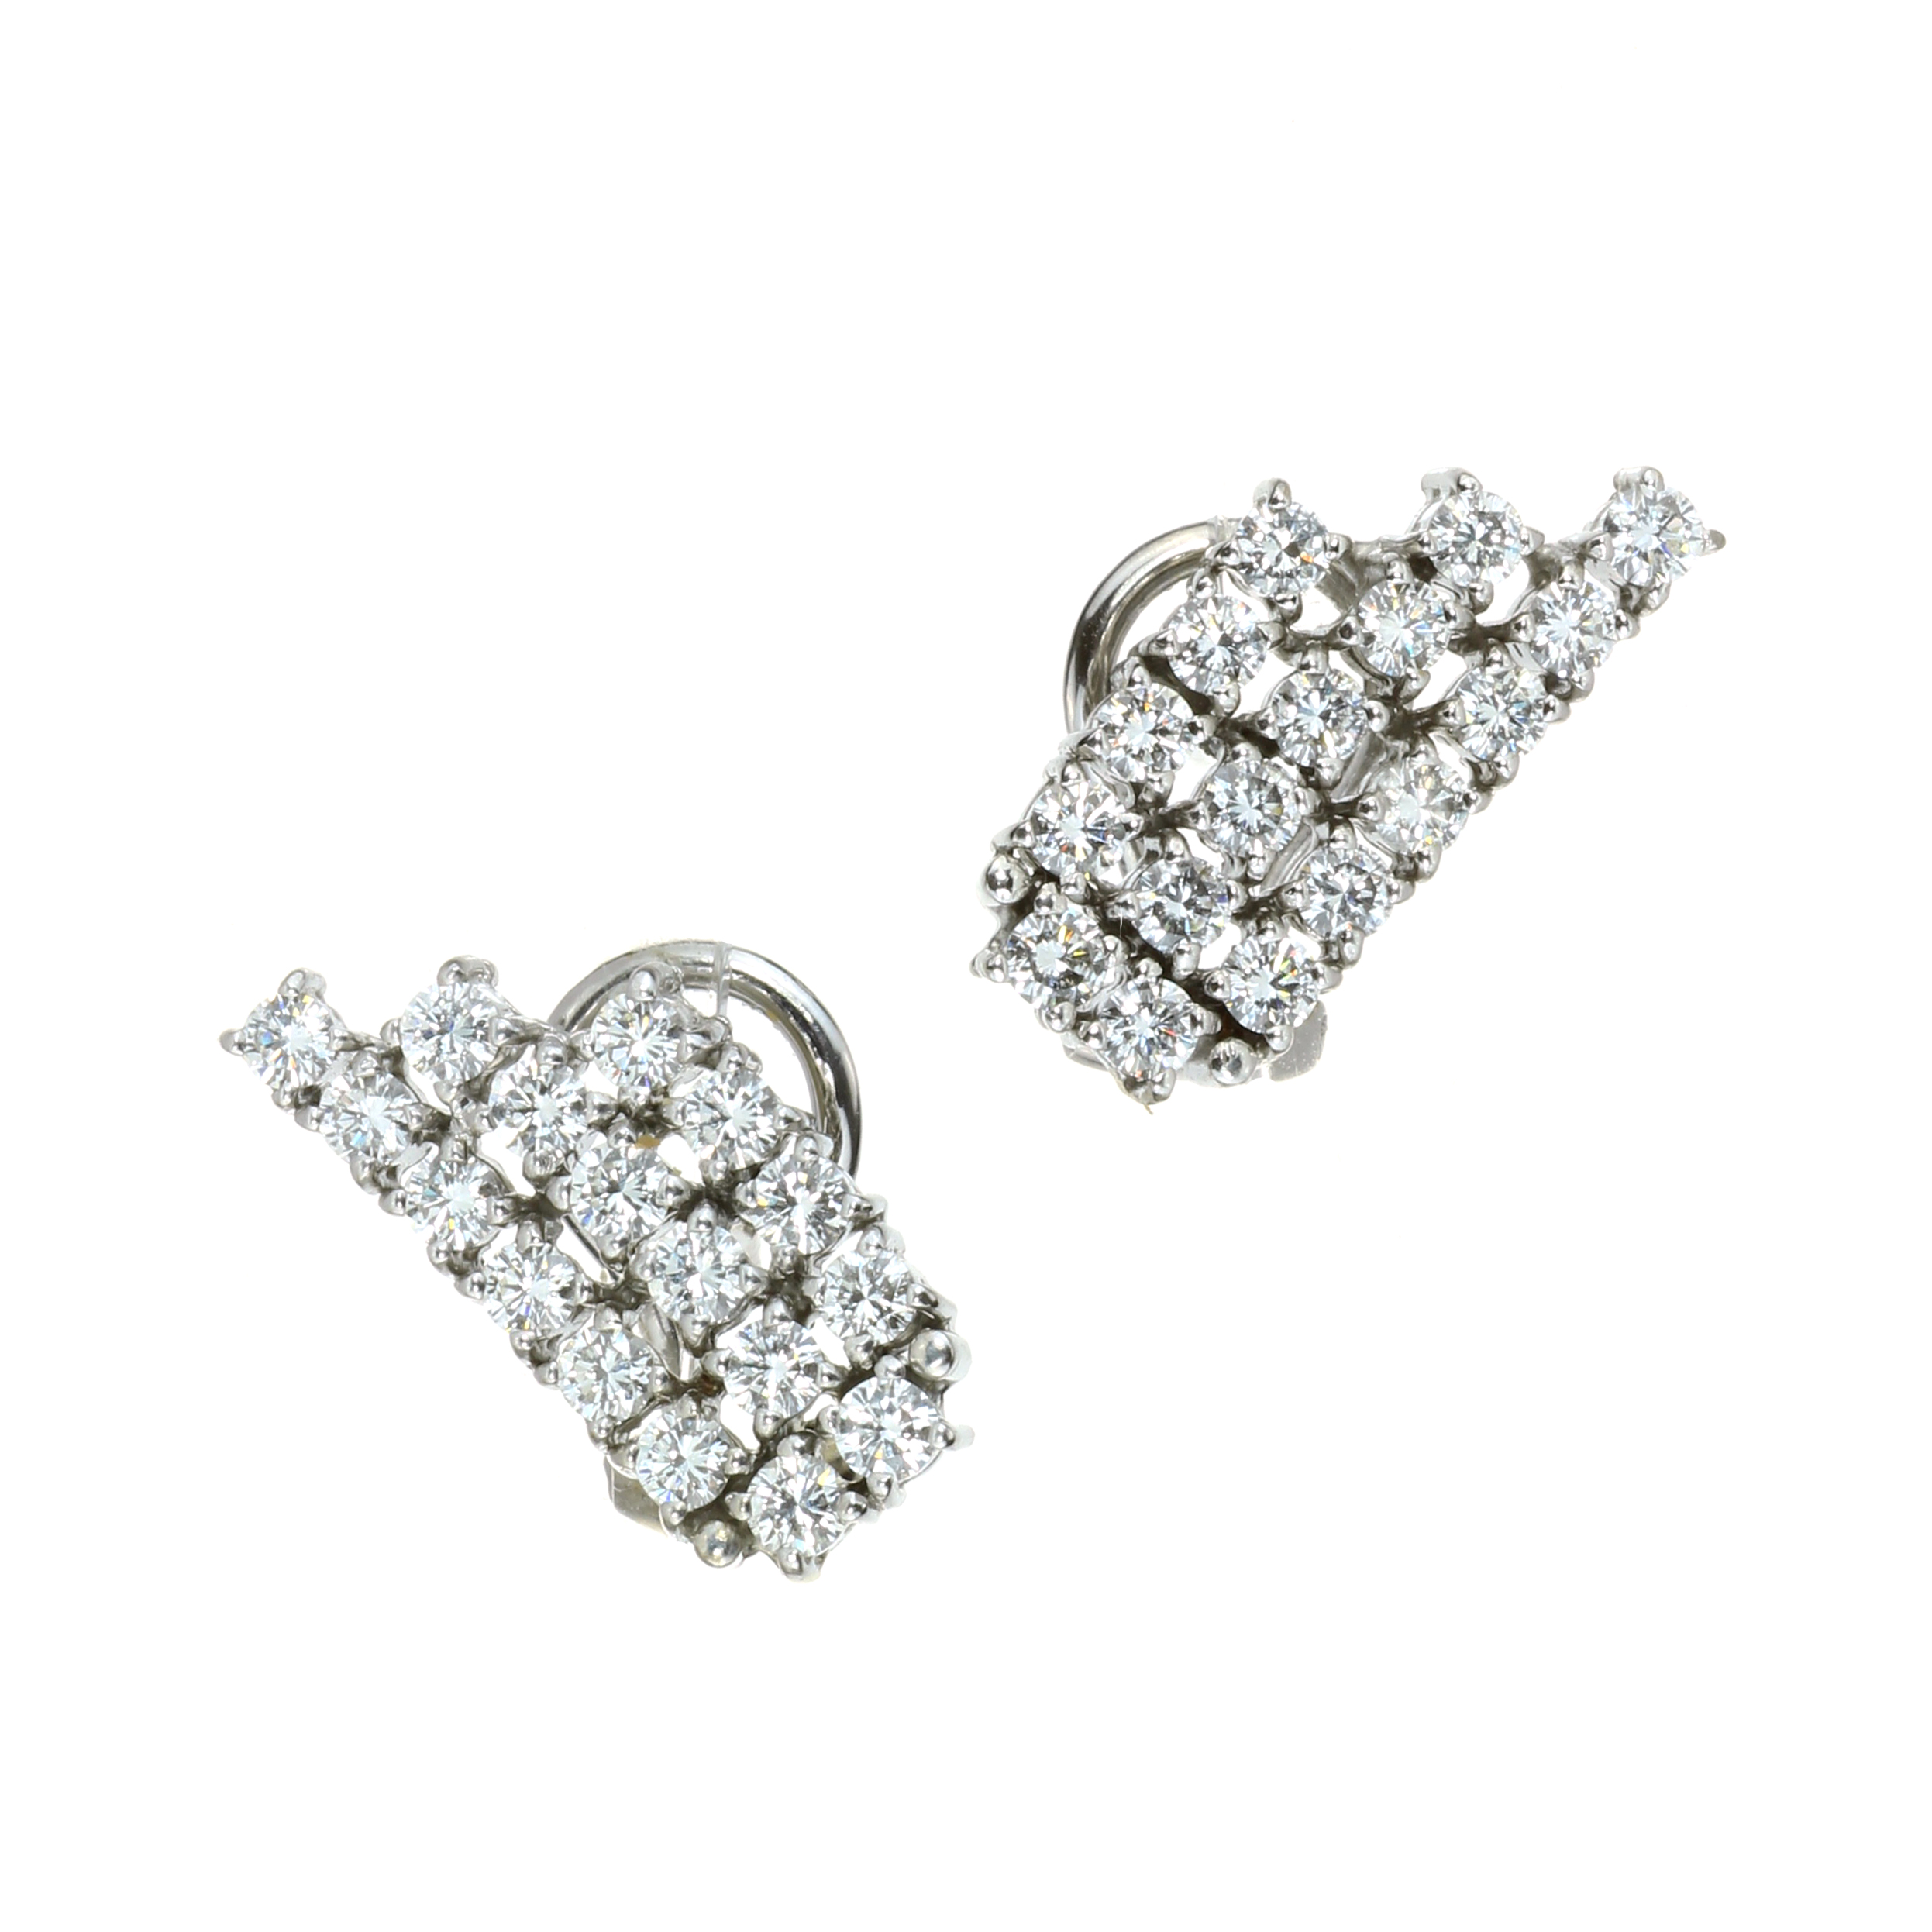 A PAIR OF DIAMOND EARRINGS in white gold or platinum, each set with three rows of round cut diamonds